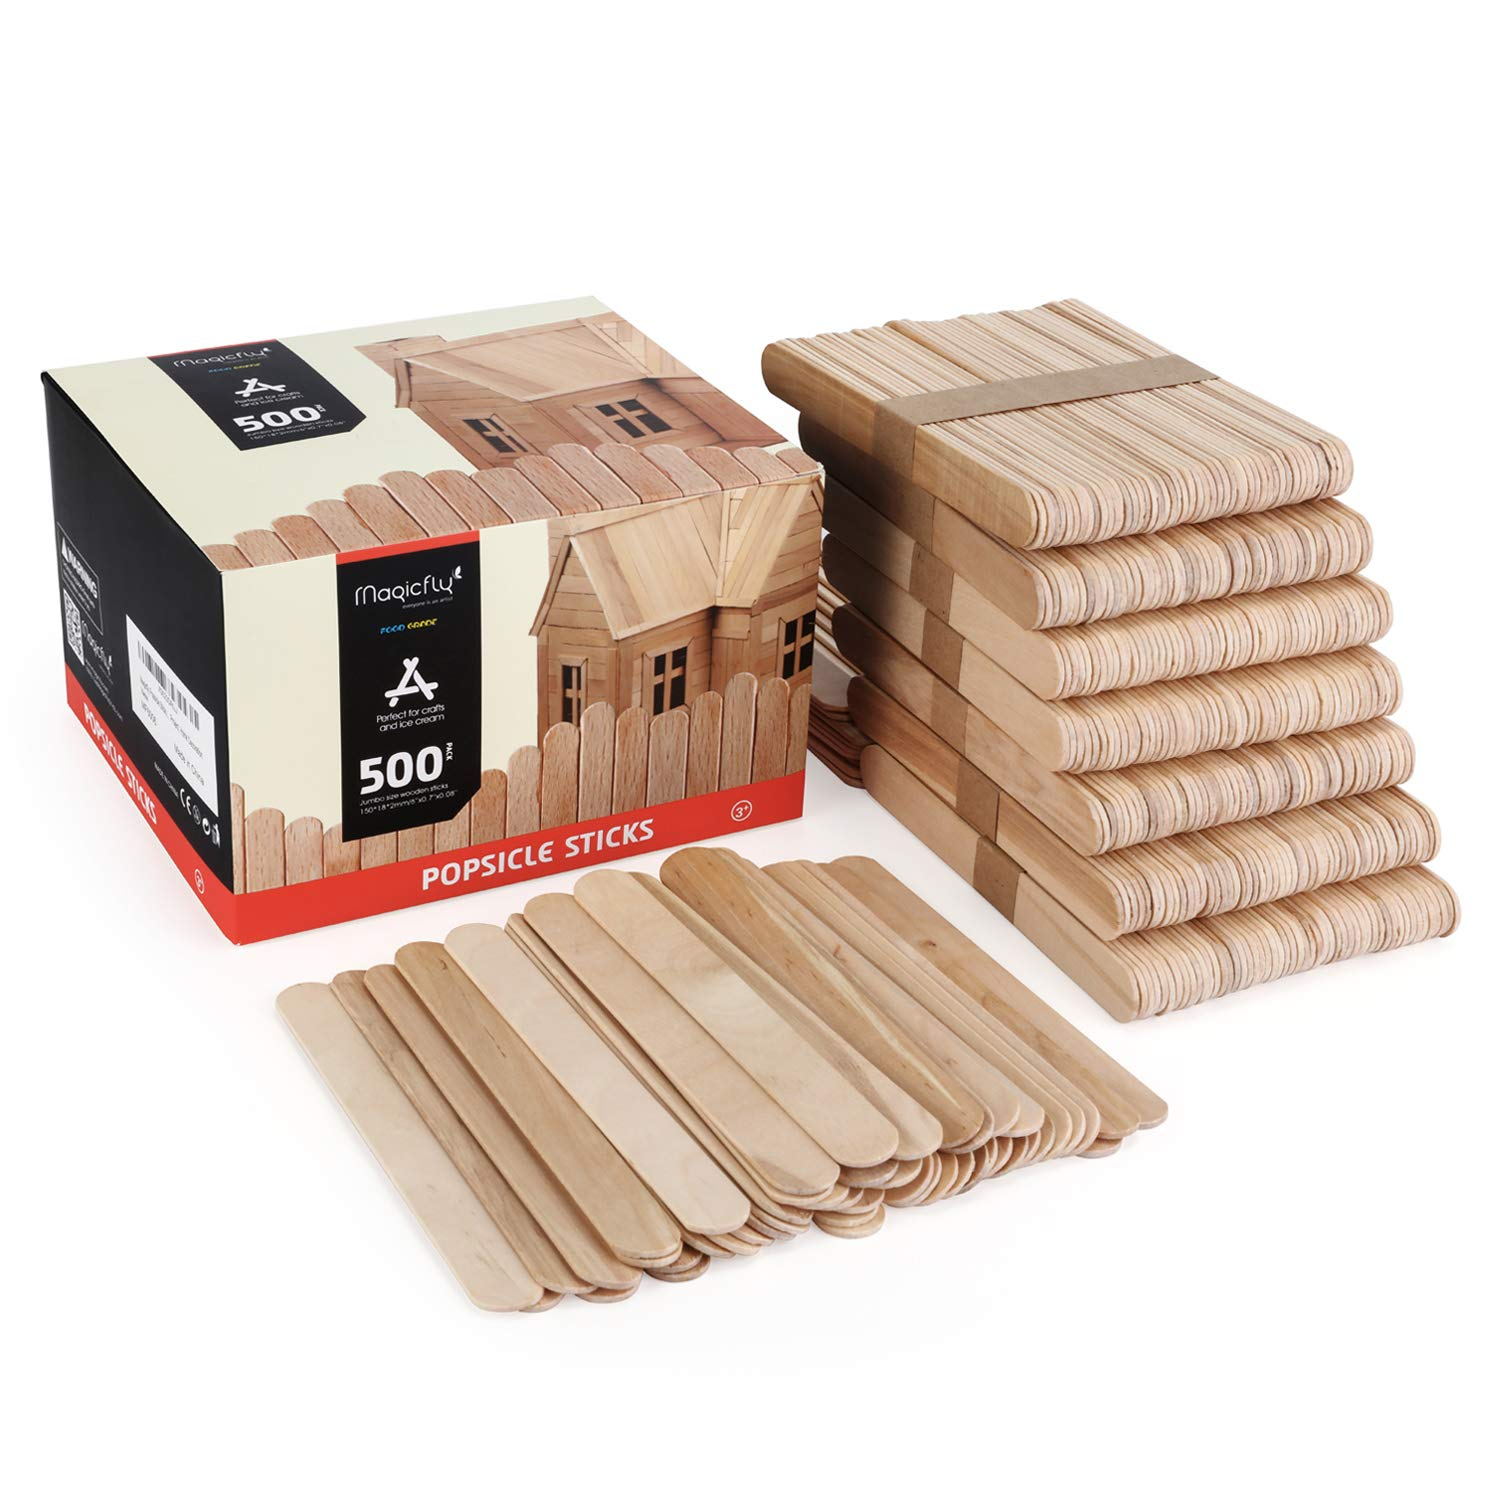 """Magicfly 500pcs Jumbo Craft Sticks, 6"""" X 0.75"""" Natural Wood Popsicle Craft Sticks for DIY Craft Projects, Home Decoration"""